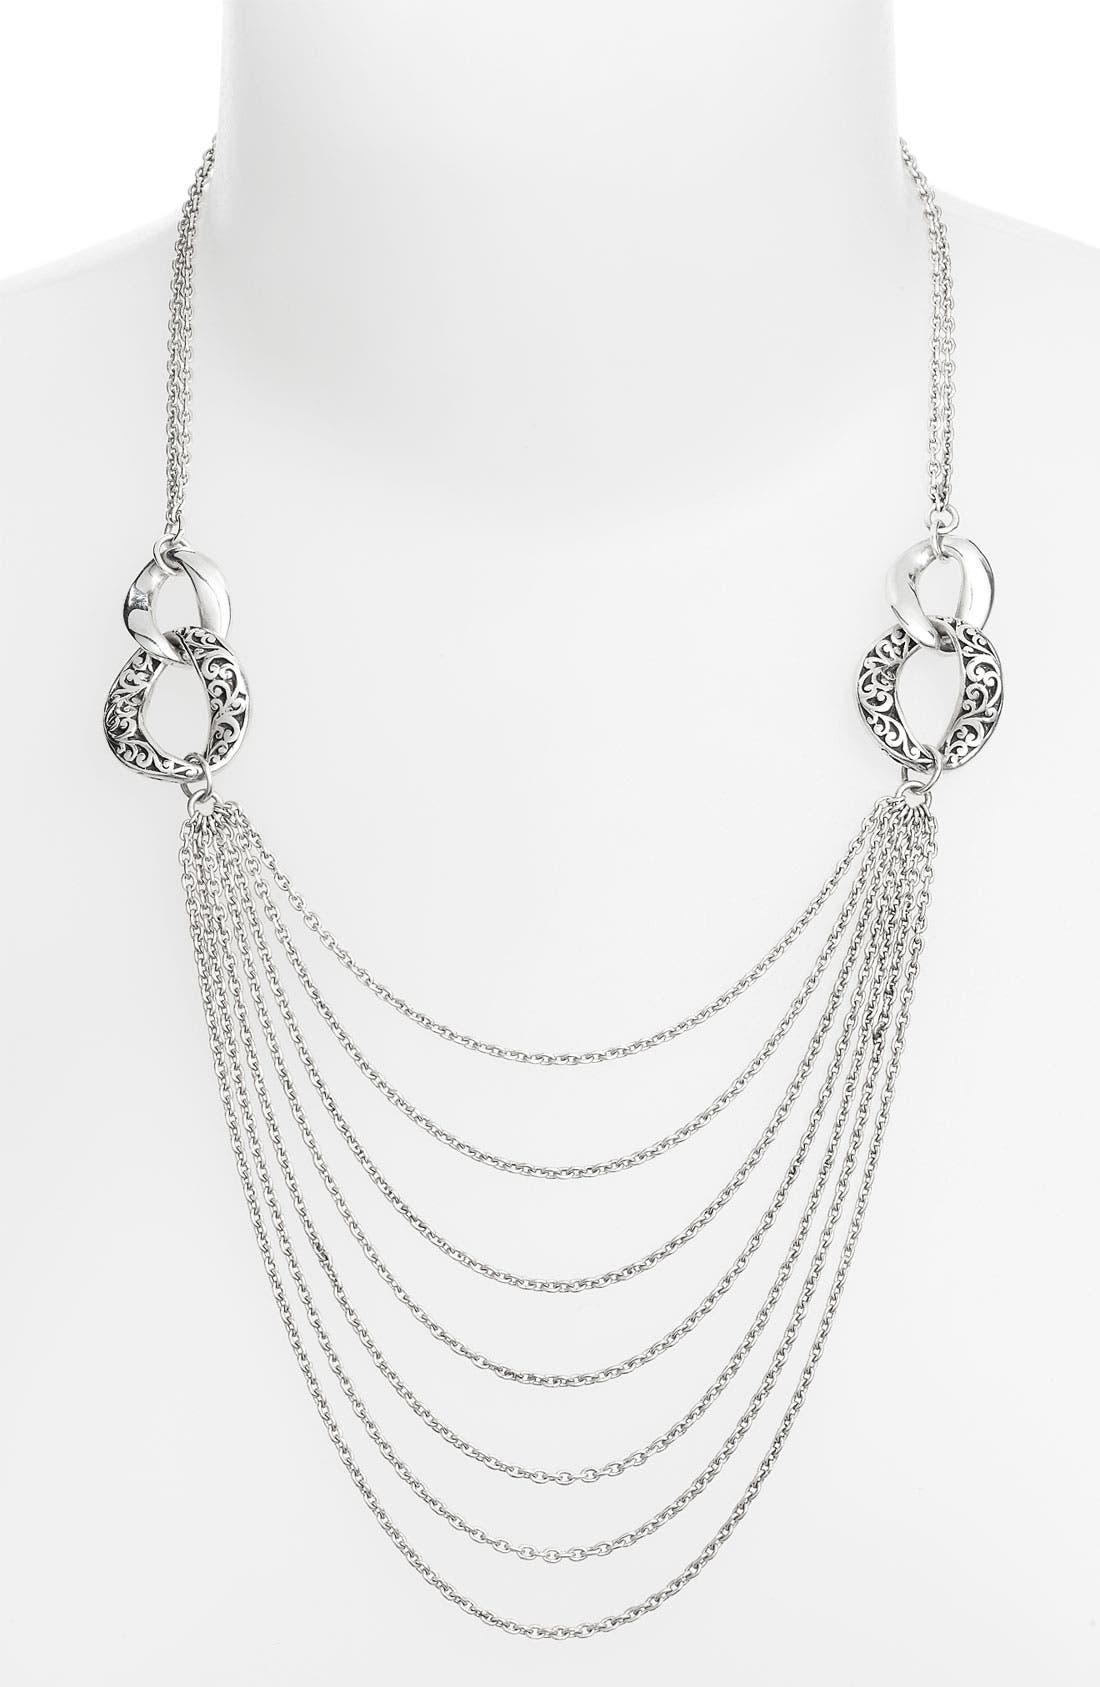 Alternate Image 1 Selected - Lois Hill 'Balls & Chains' Multi Chain Necklace